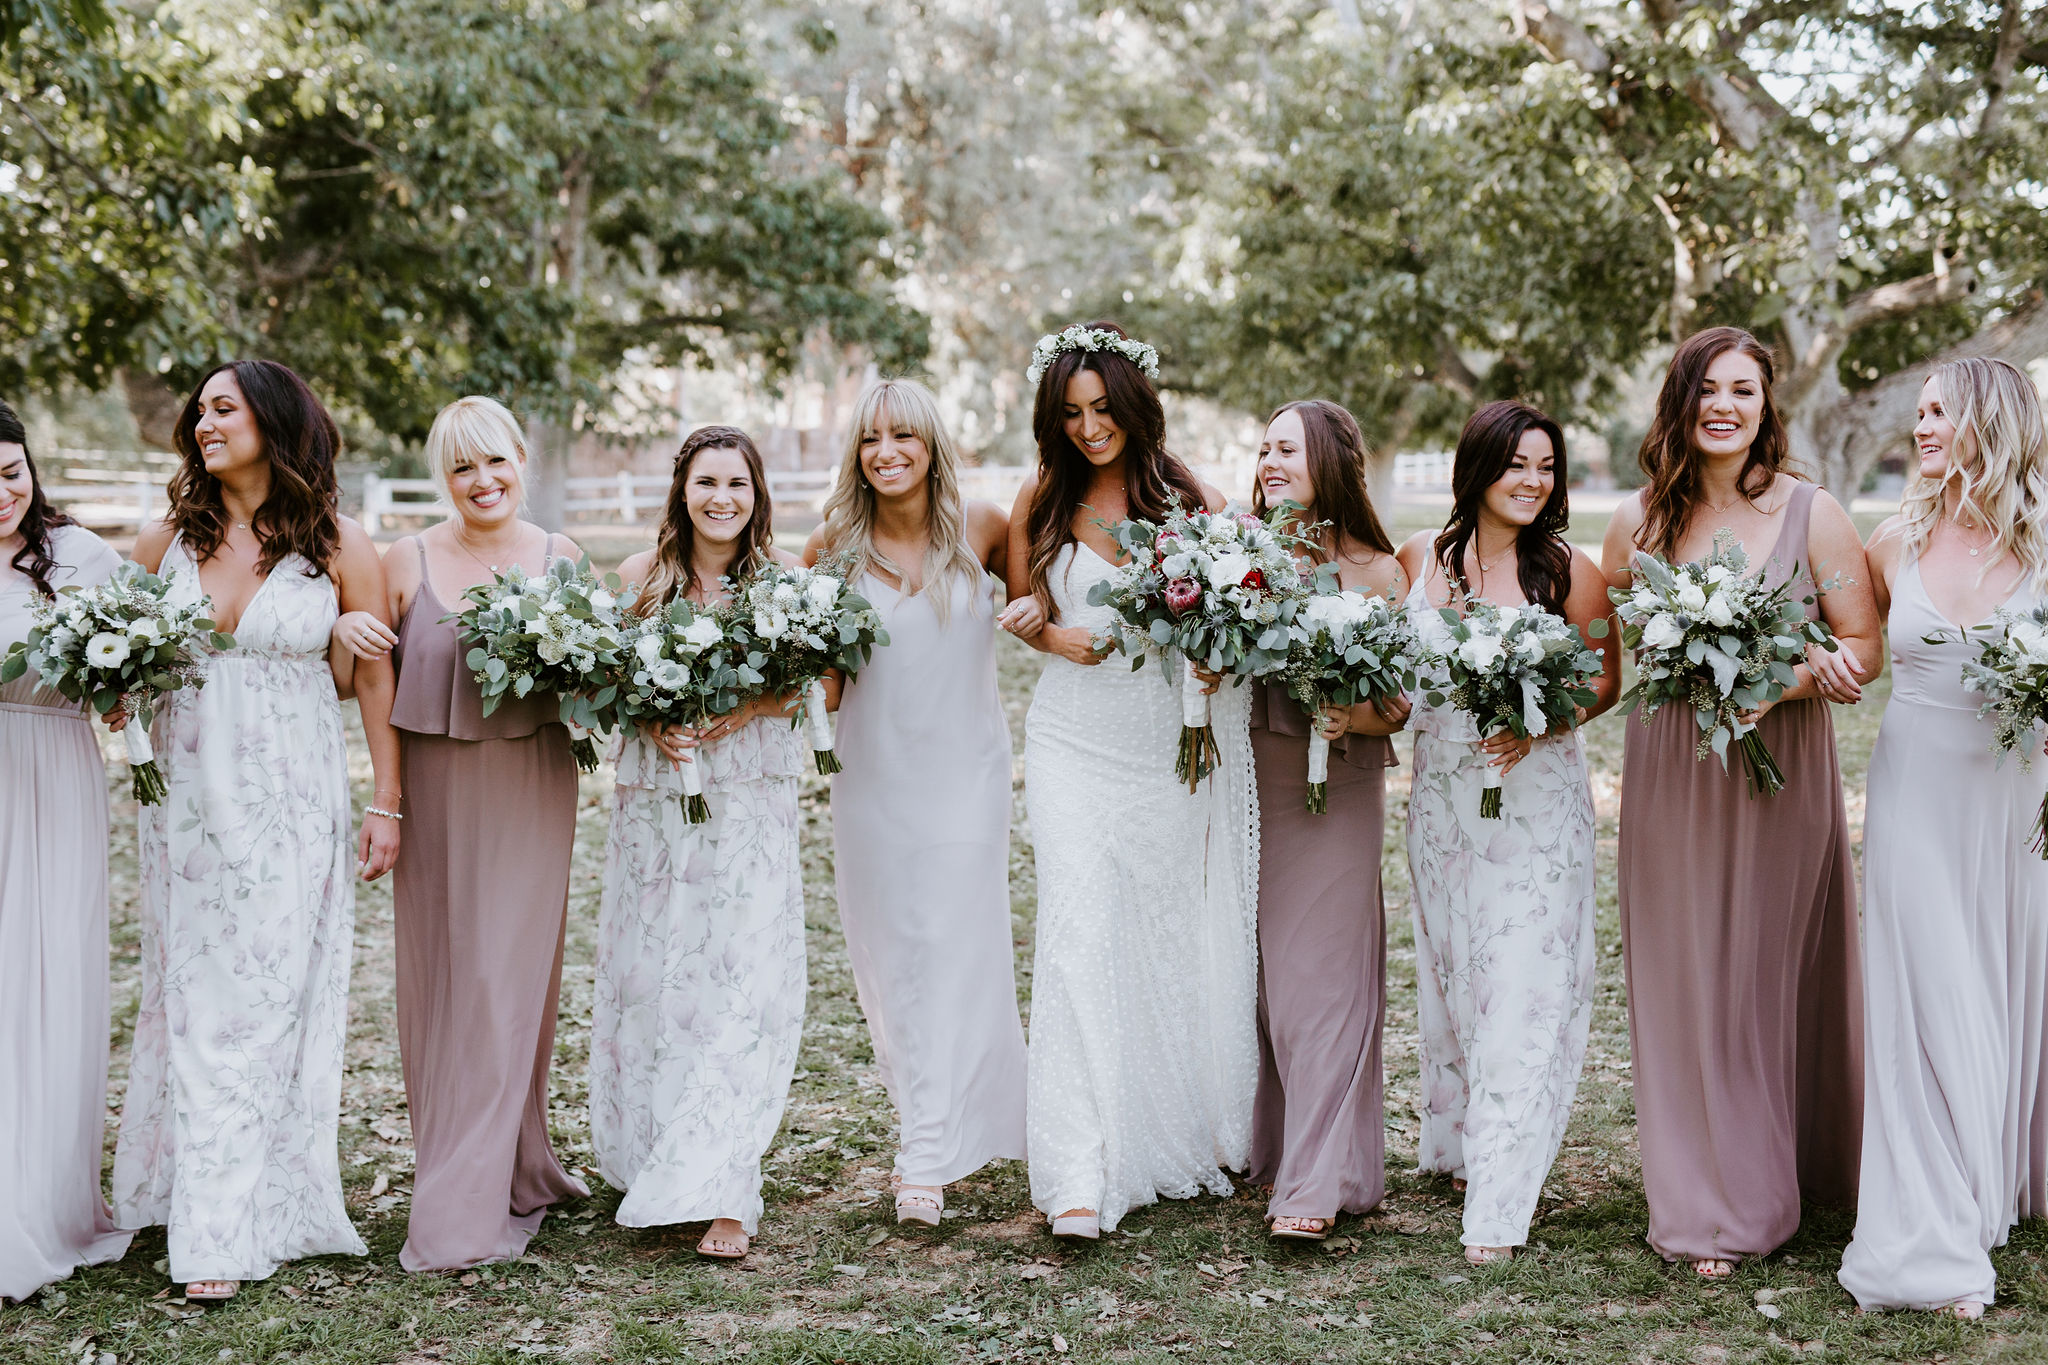 WalnutGroveWedding_Geoff&LyndsiPhotography_Casie&Matt_Bridesmaids24.jpg